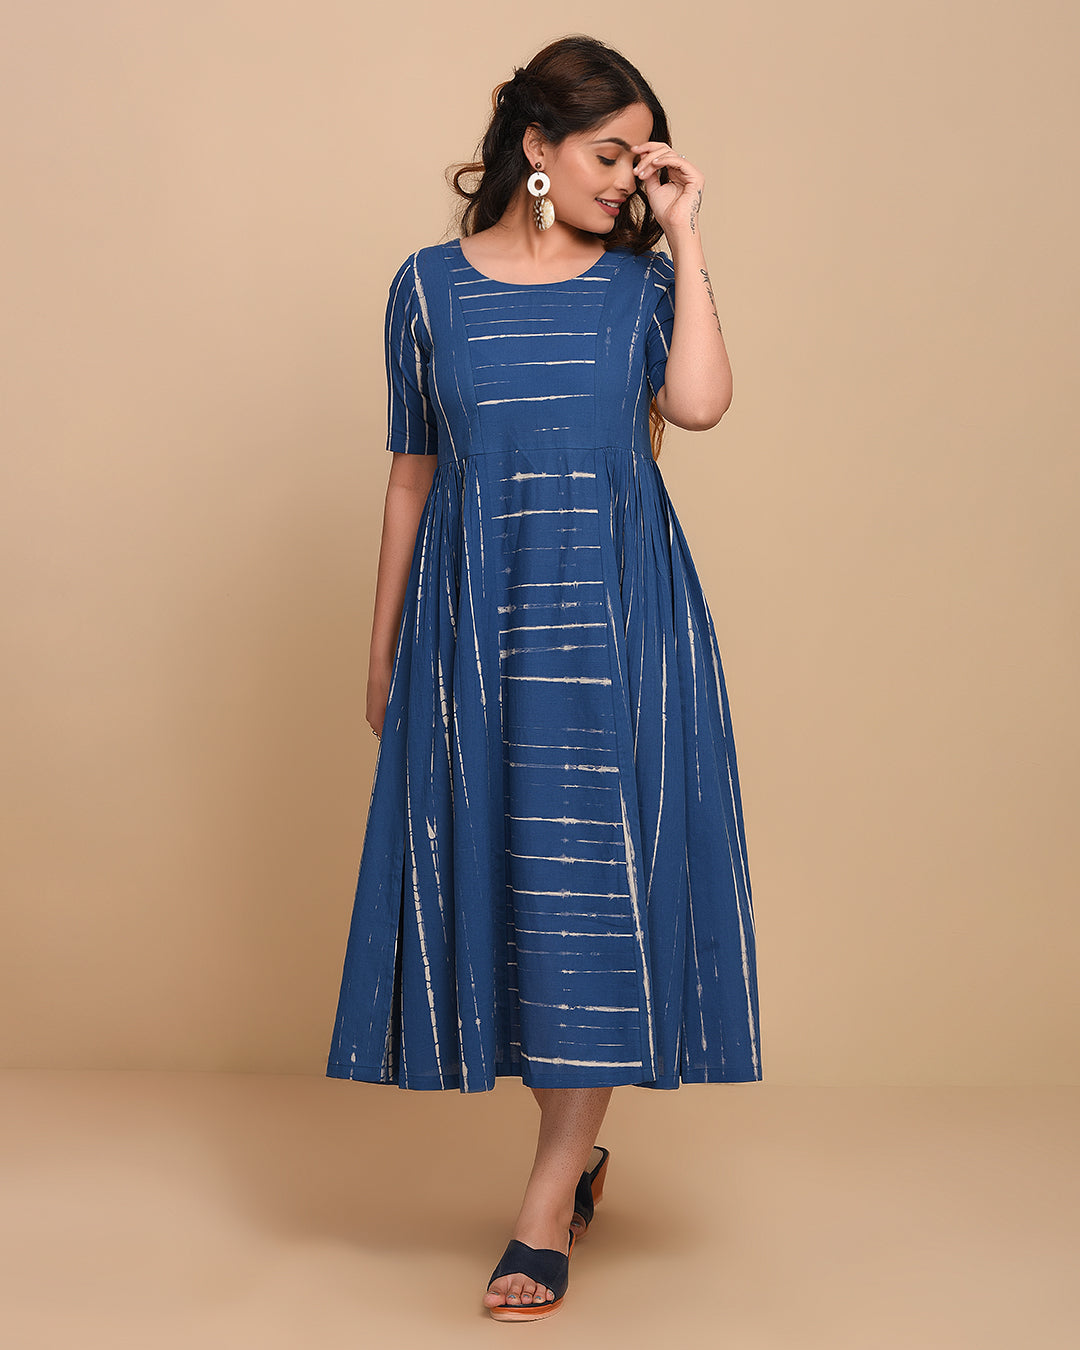 Stitched Blue Cotton Tie-Dyed Gathered Dress/Kurti